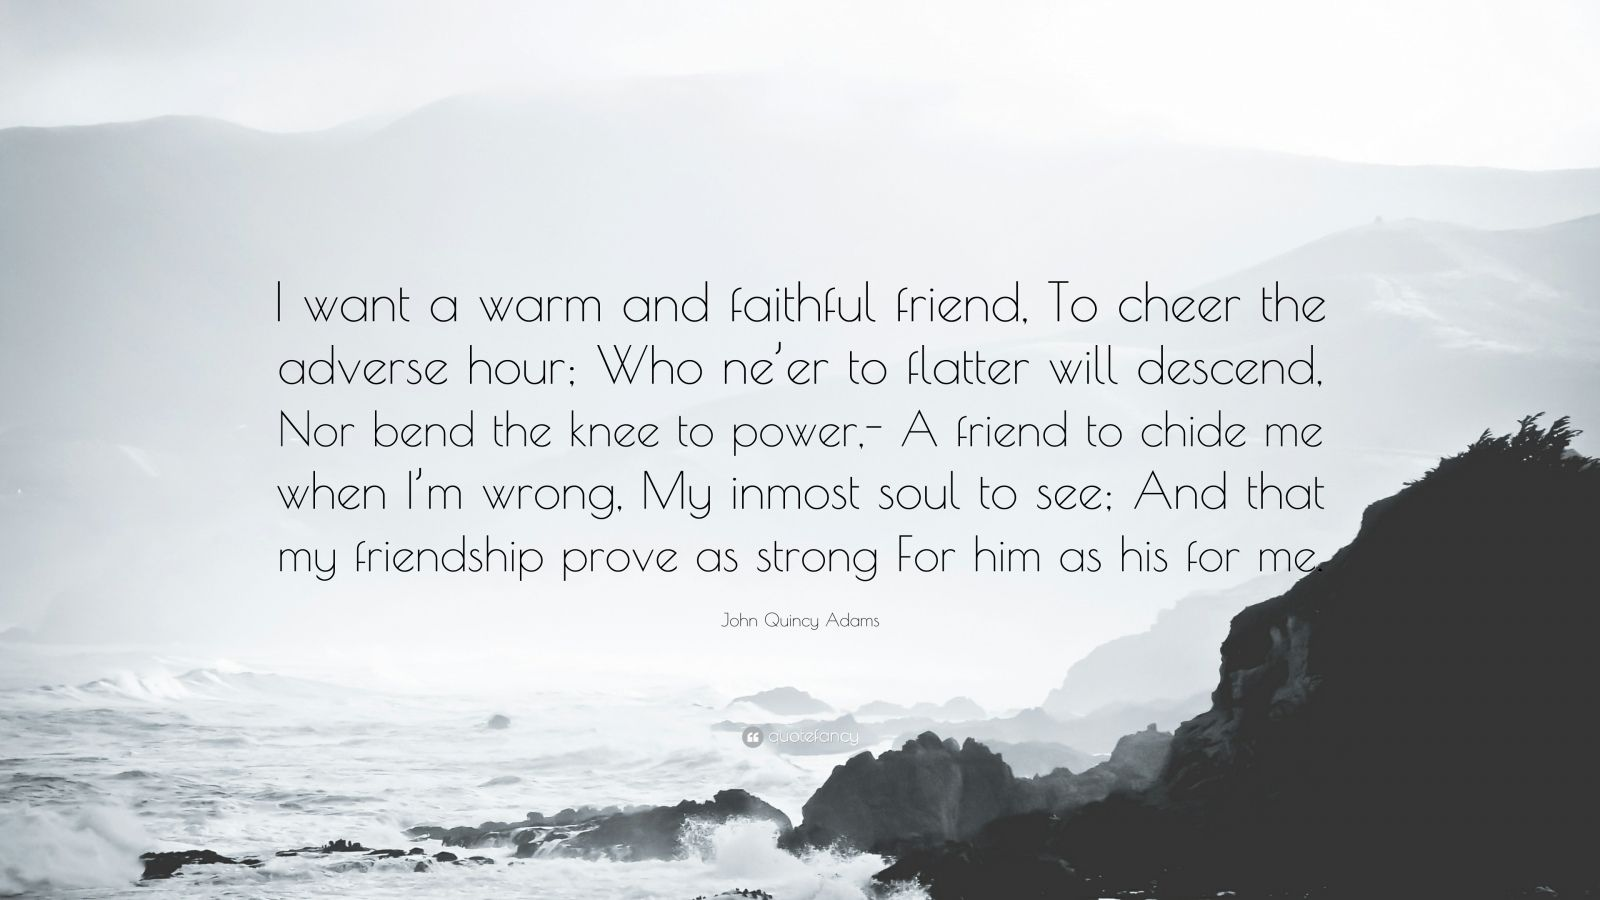 "John Quincy Adams Quote: ""I want a warm and faithful friend, To cheer the adverse hour; Who ne'er to flatter will descend, Nor bend the knee to power,- A friend to chide me when I'm wrong, My inmost soul to see; And that my friendship prove as strong For him as his for me."""